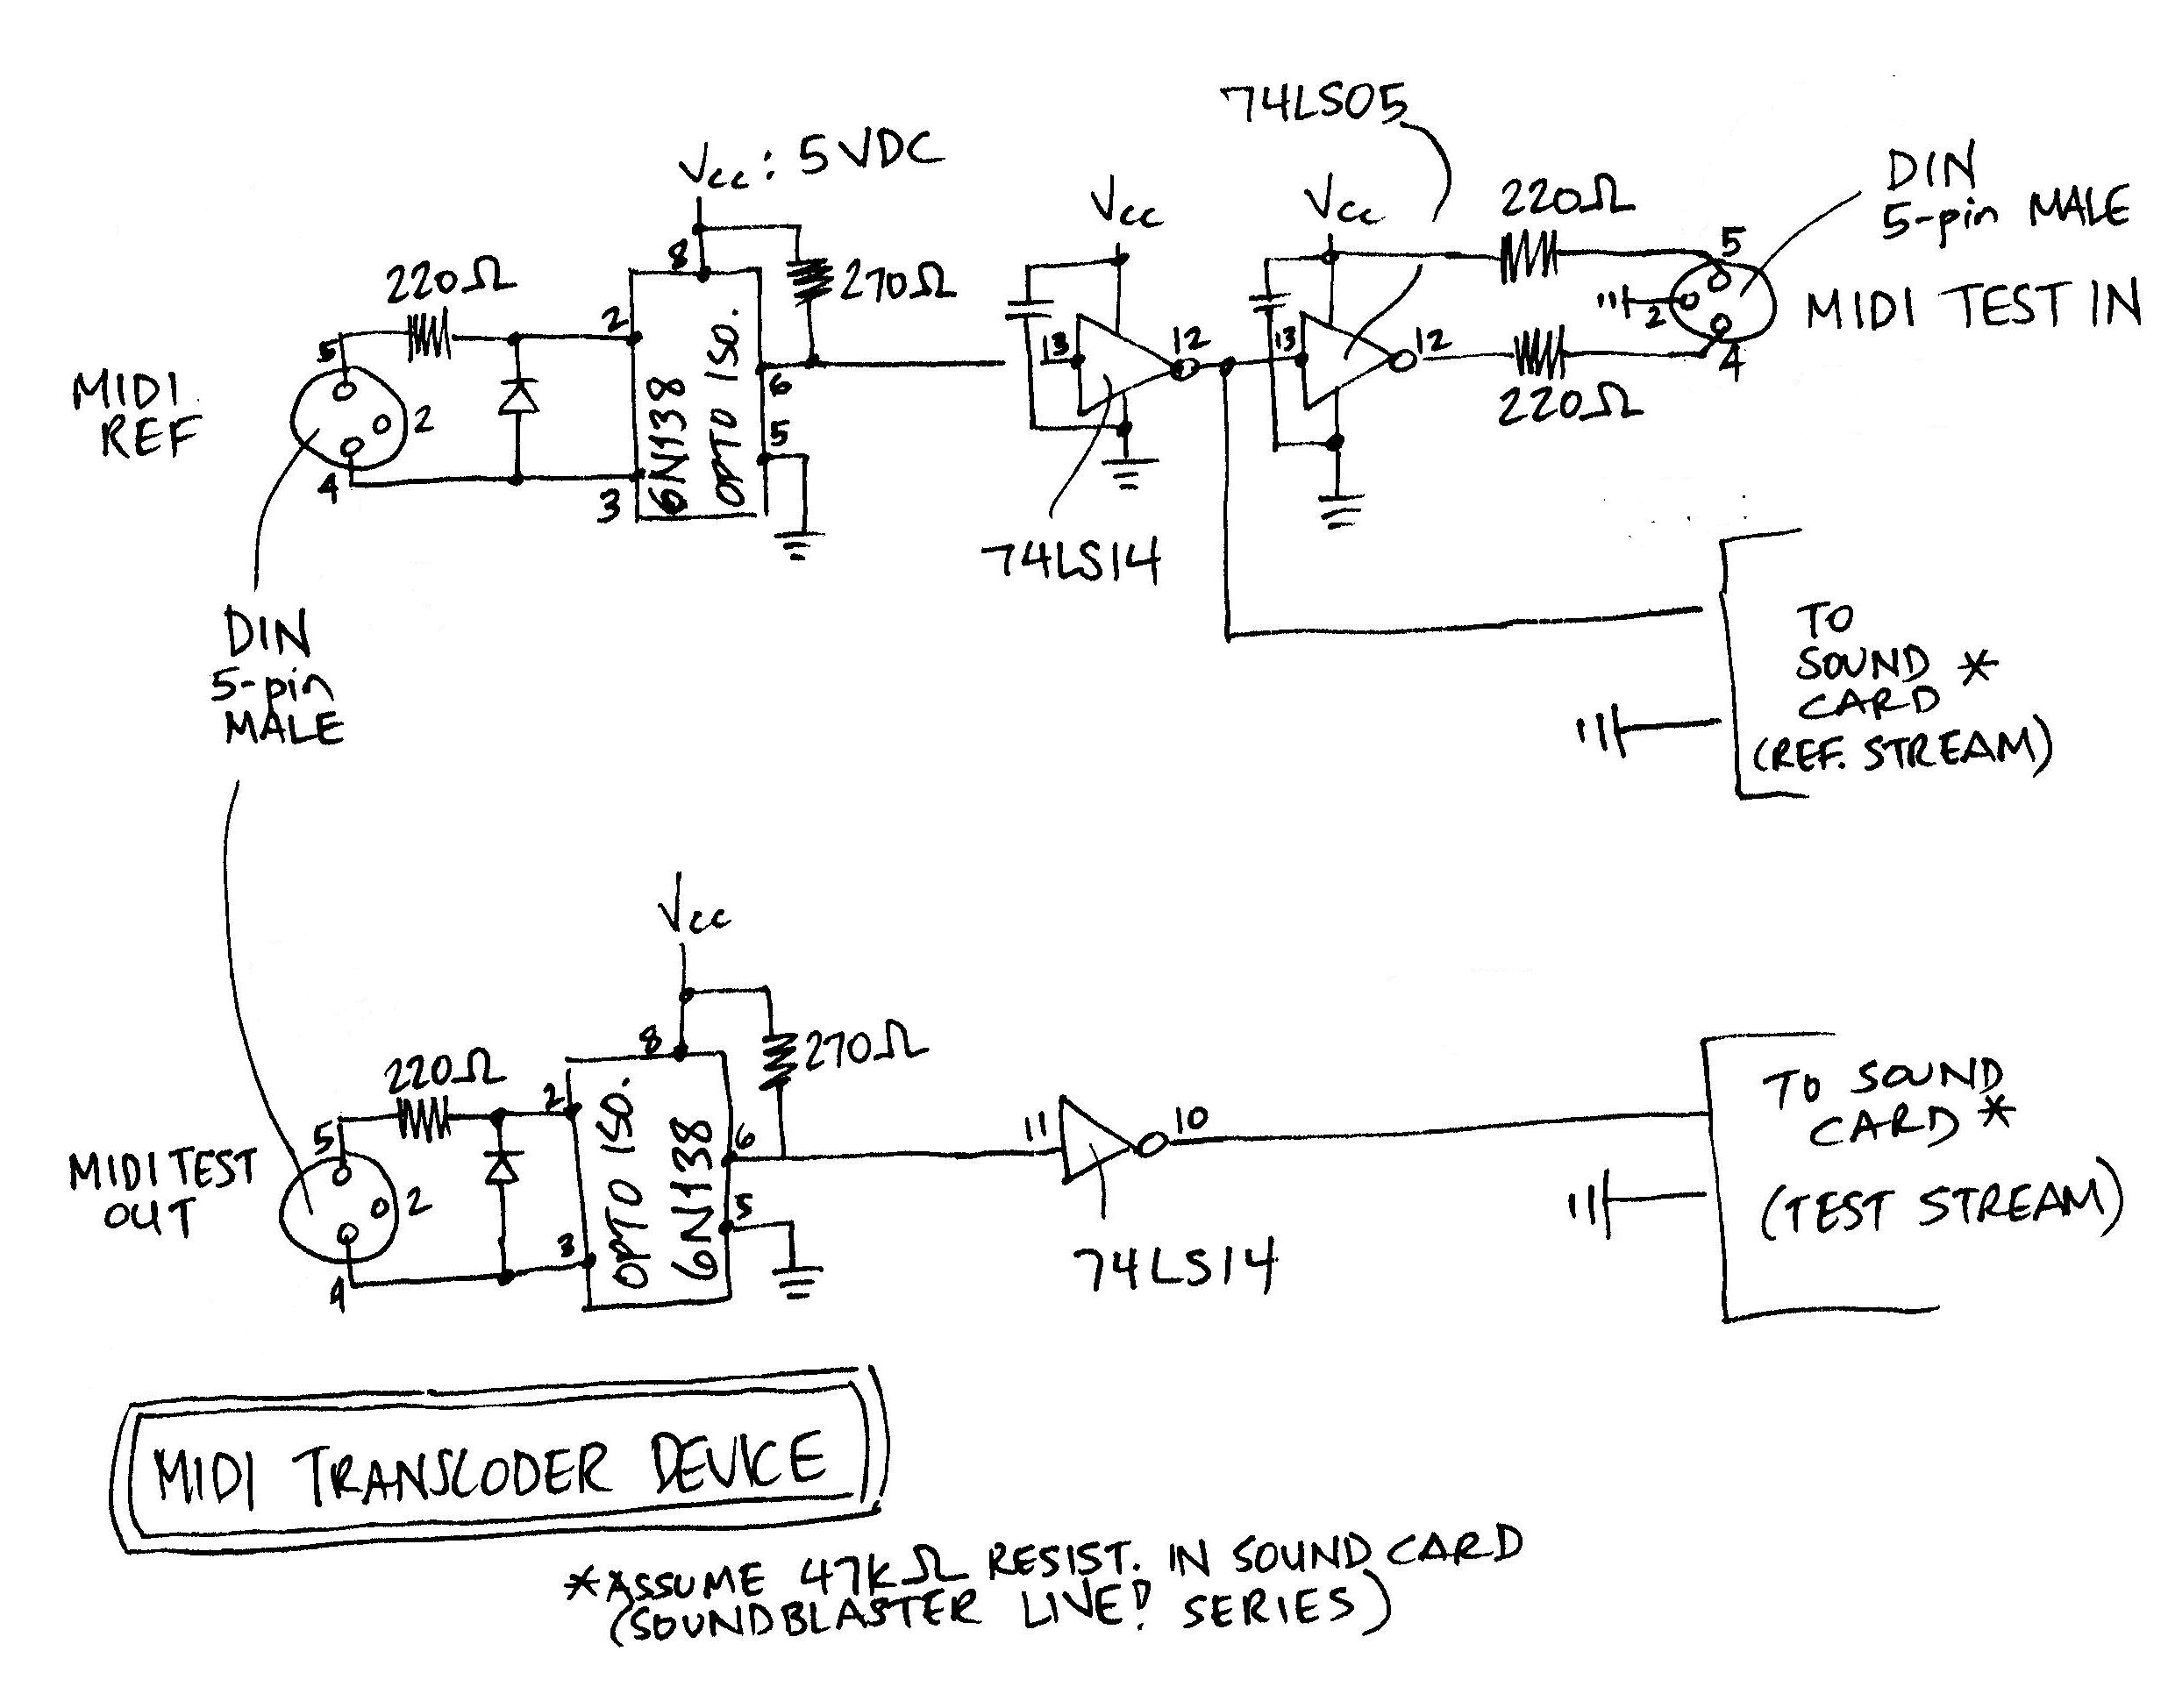 MIDI Transcoder Schematics Download